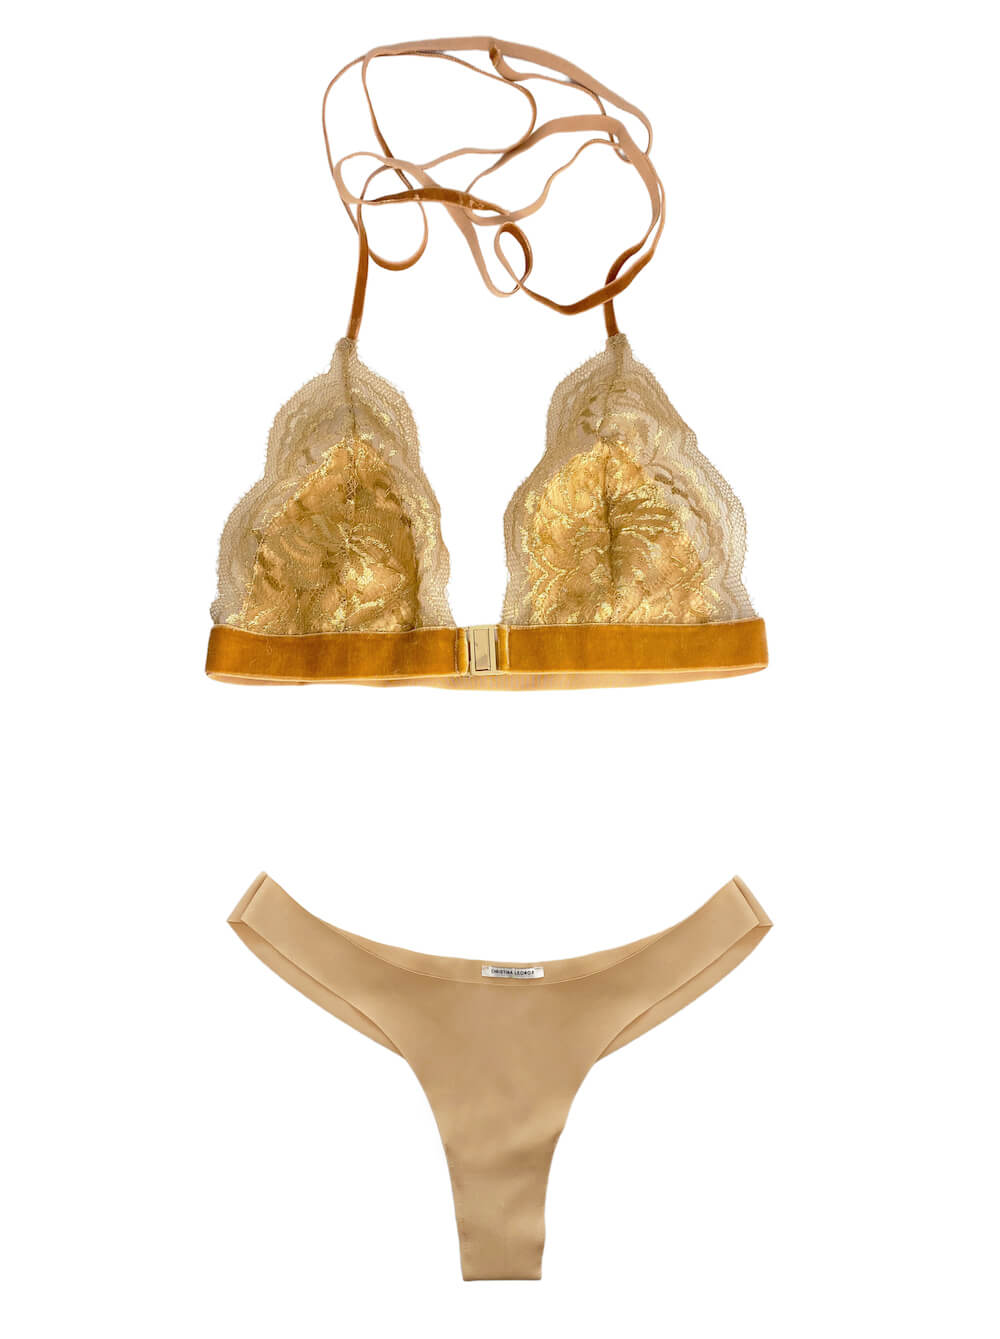 FIRENZE LACE-TRIMMED SOFT-CUP BRALETTE & ECONYL BRIEFS SET